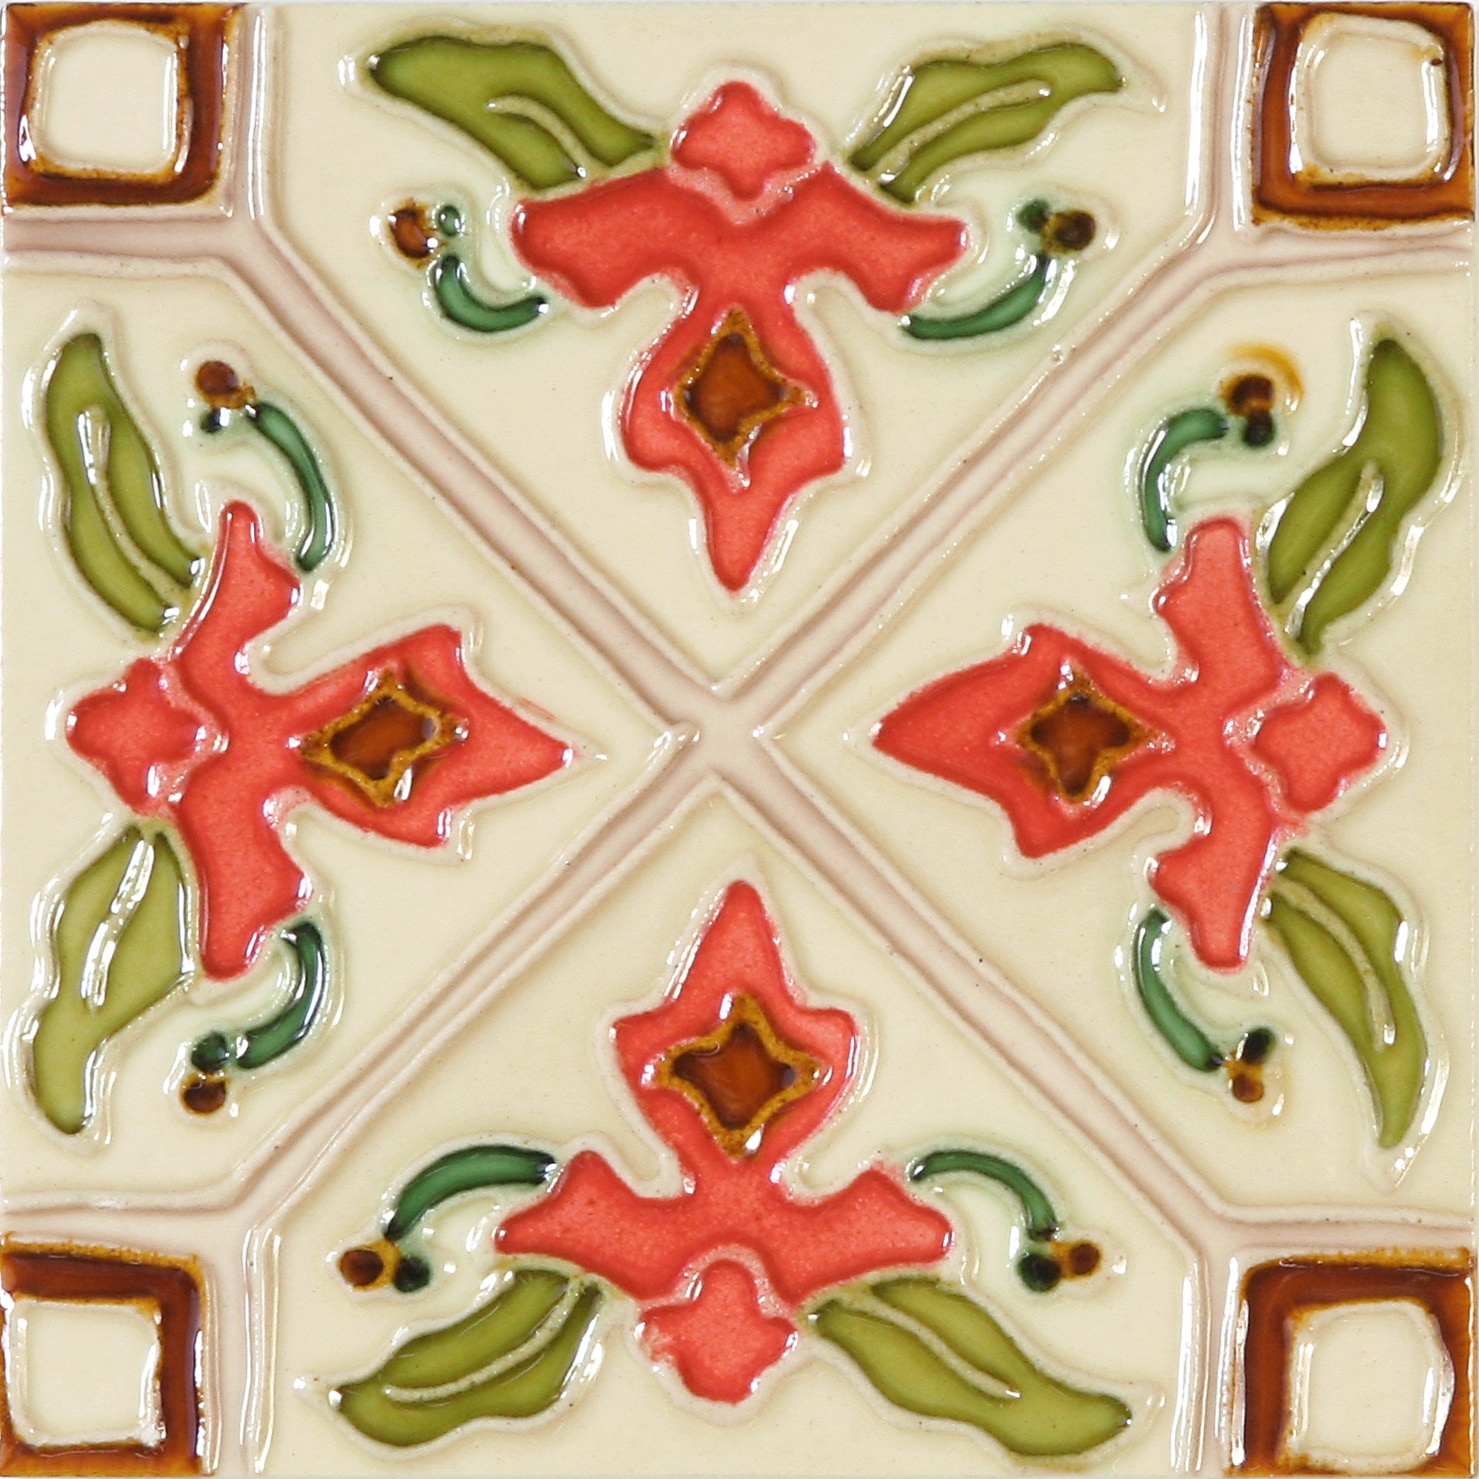 Hand-Painted Ceramic Glazed Wall Tile in Tulipan Hand-Painted Ceramic Glazed Wall Tile in Tulipan 0